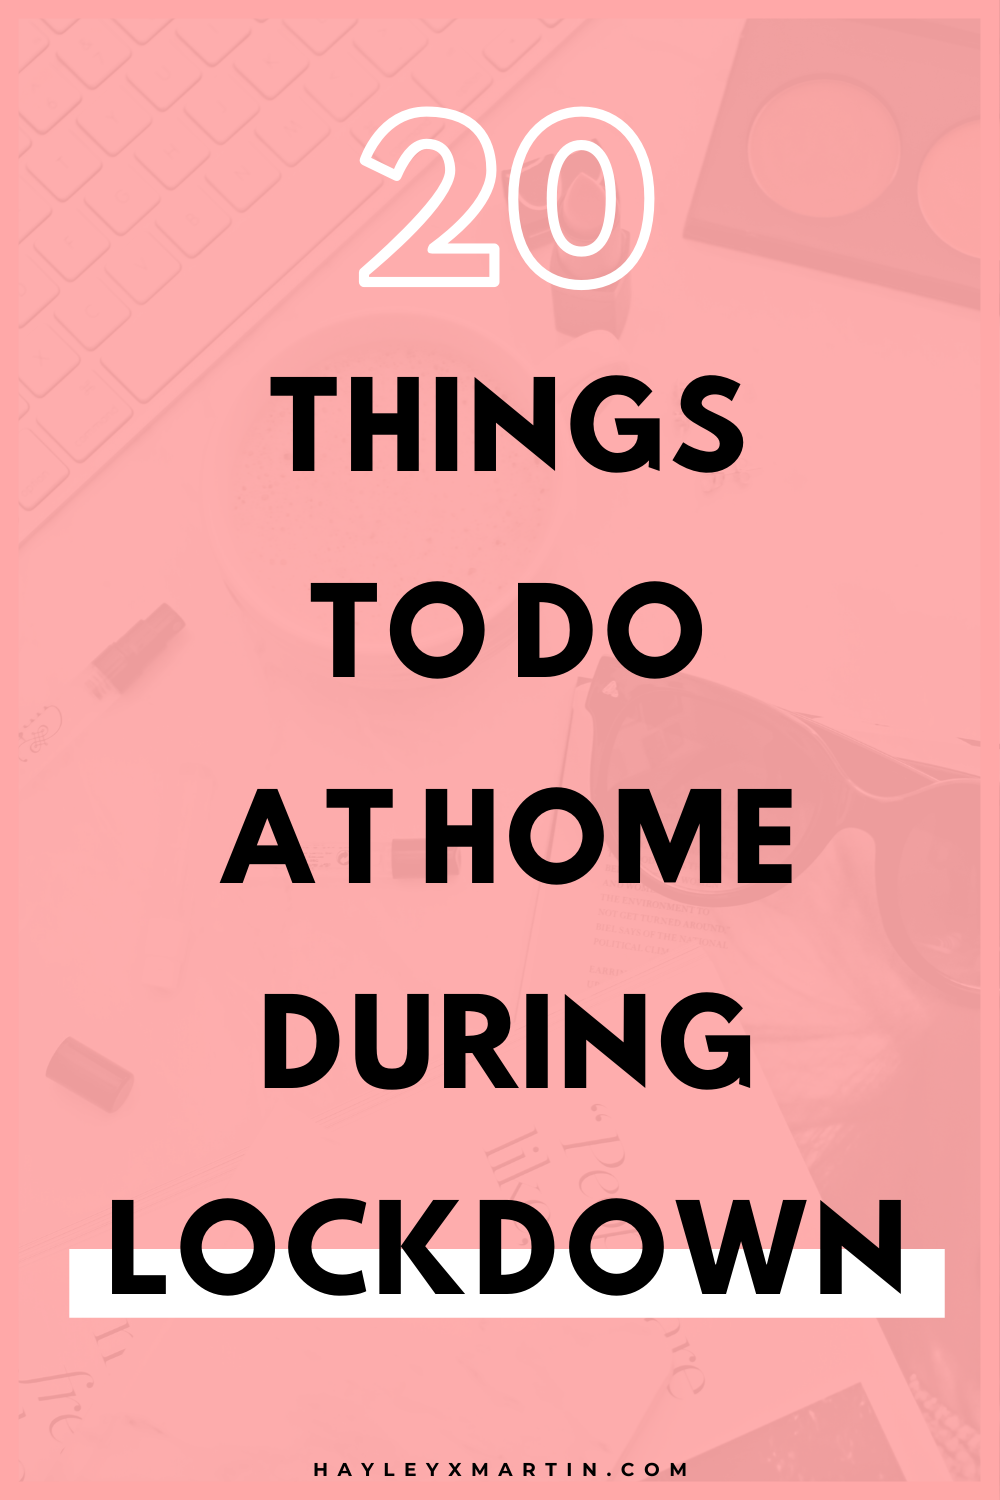 20 things to do at home during lockdown | hayleyxmartin | 20 productive things to do at home